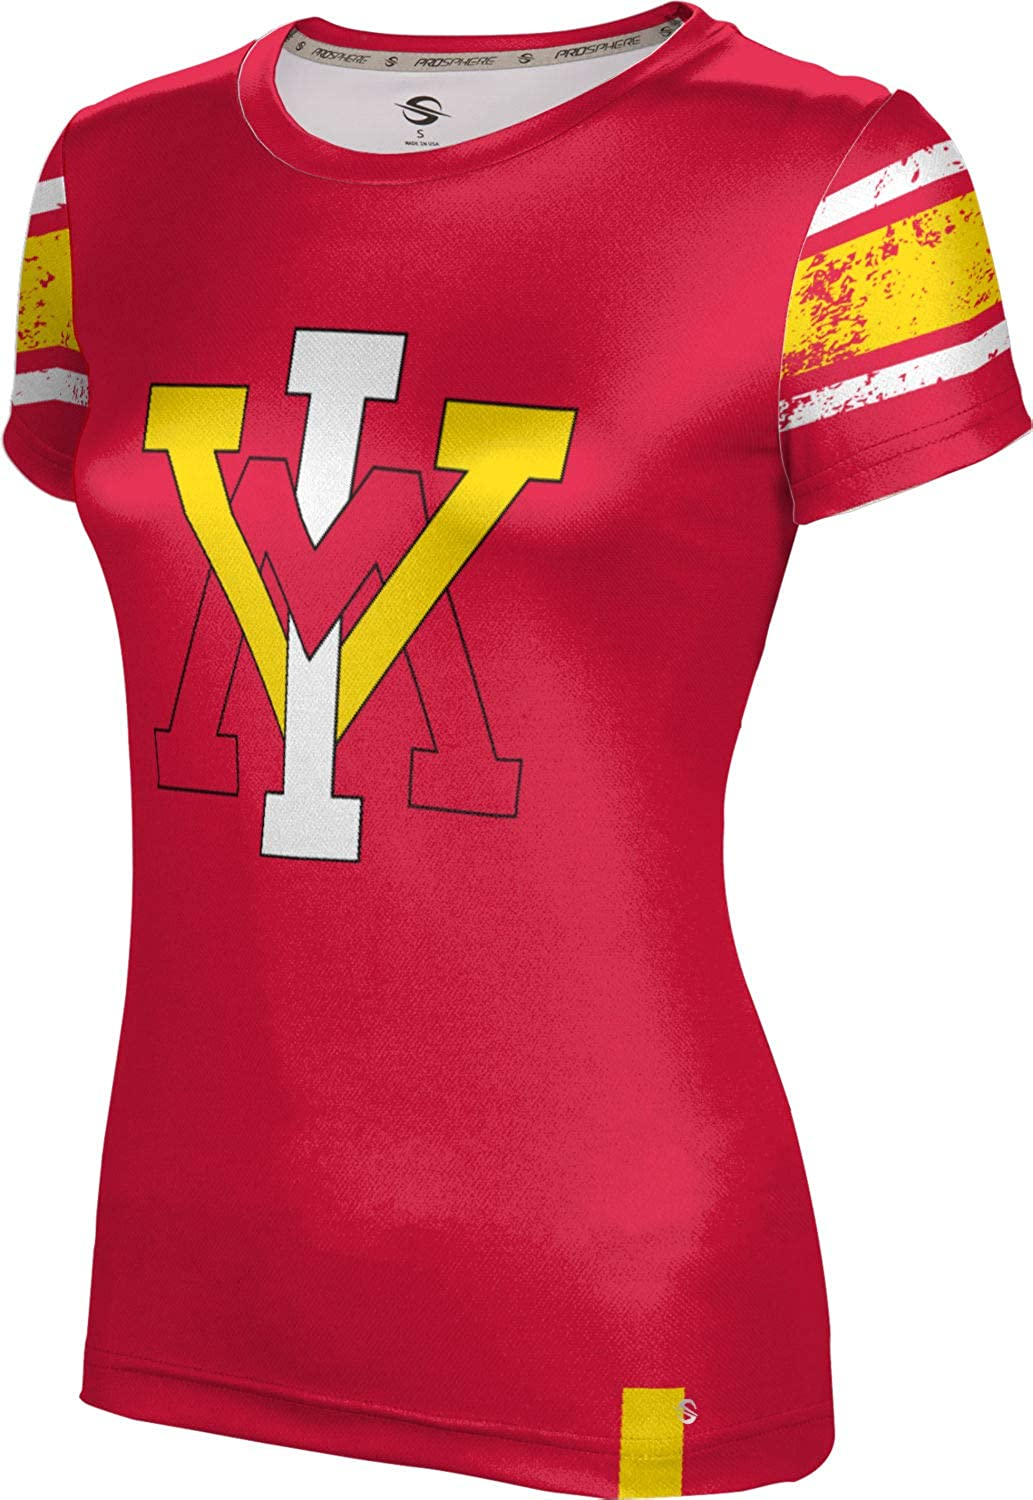 ProSphere Virginia Military Institute Girls' Performance T-Shirt (End Zone)